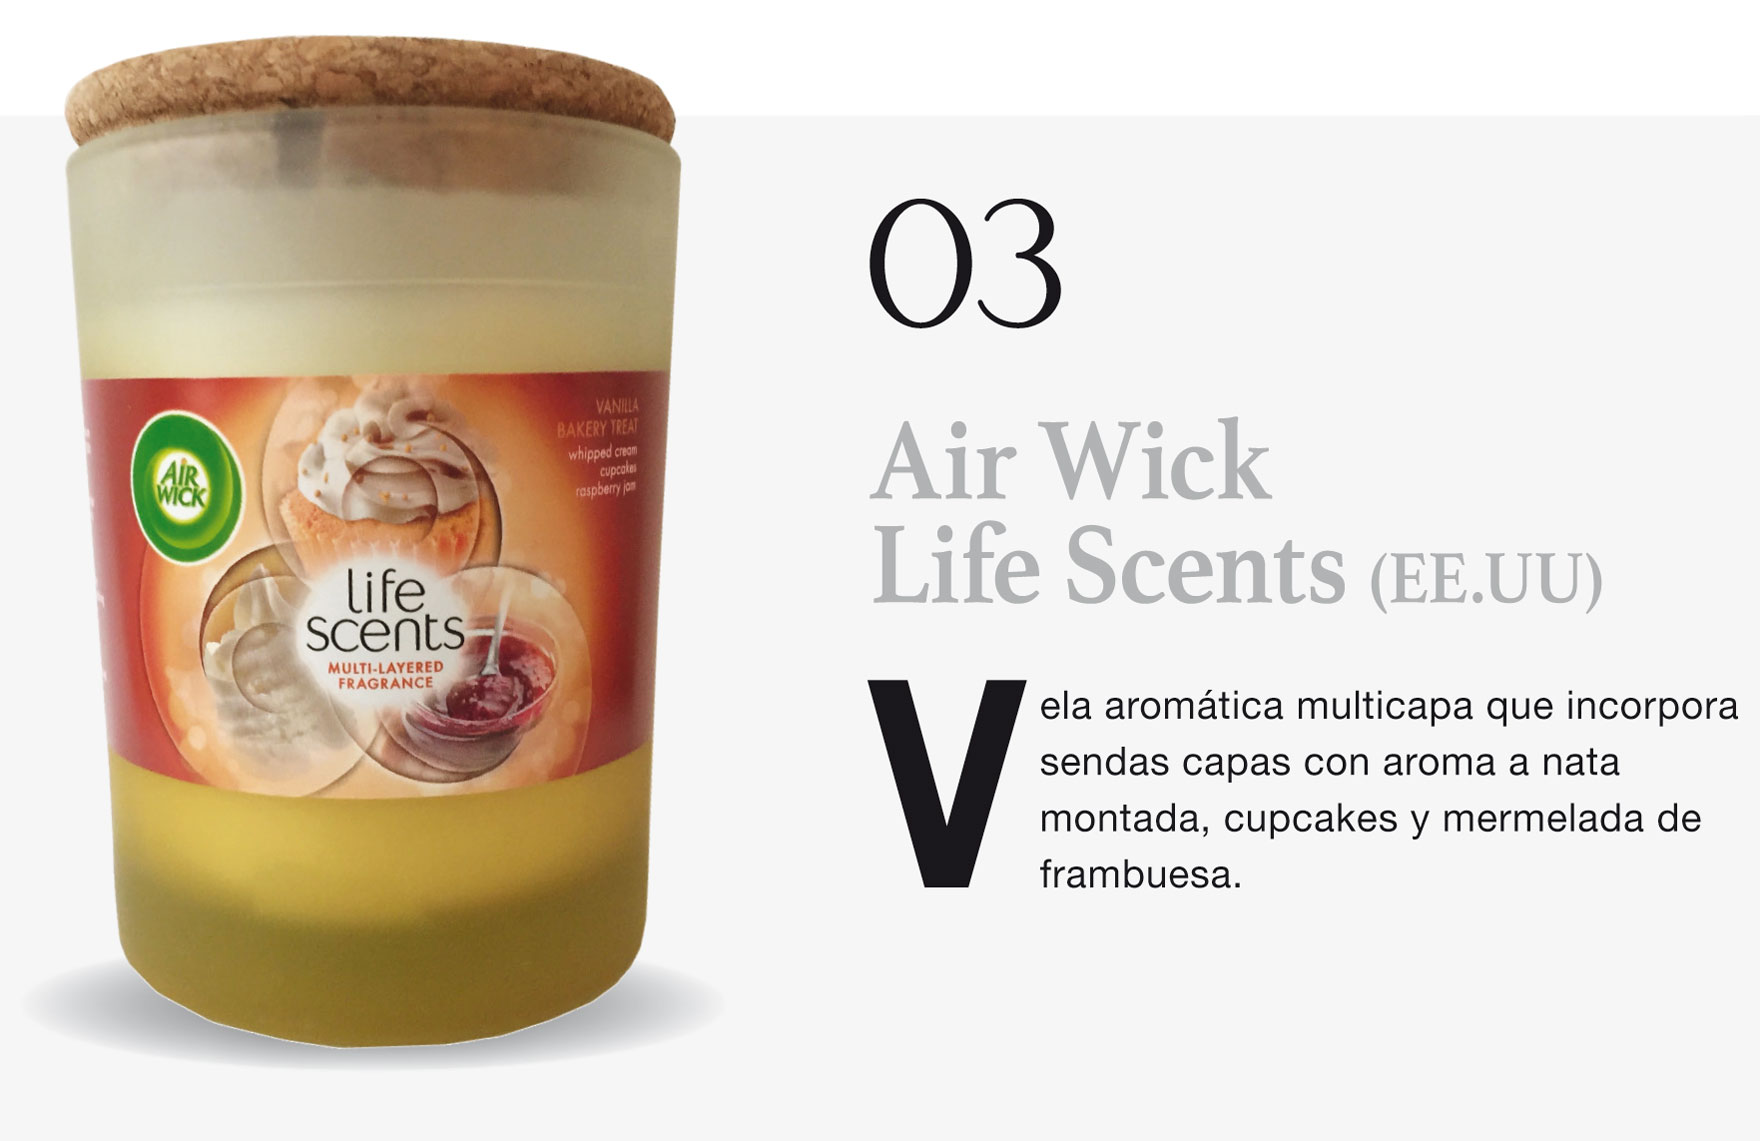 Air Wick Life Scents (EE.UU)